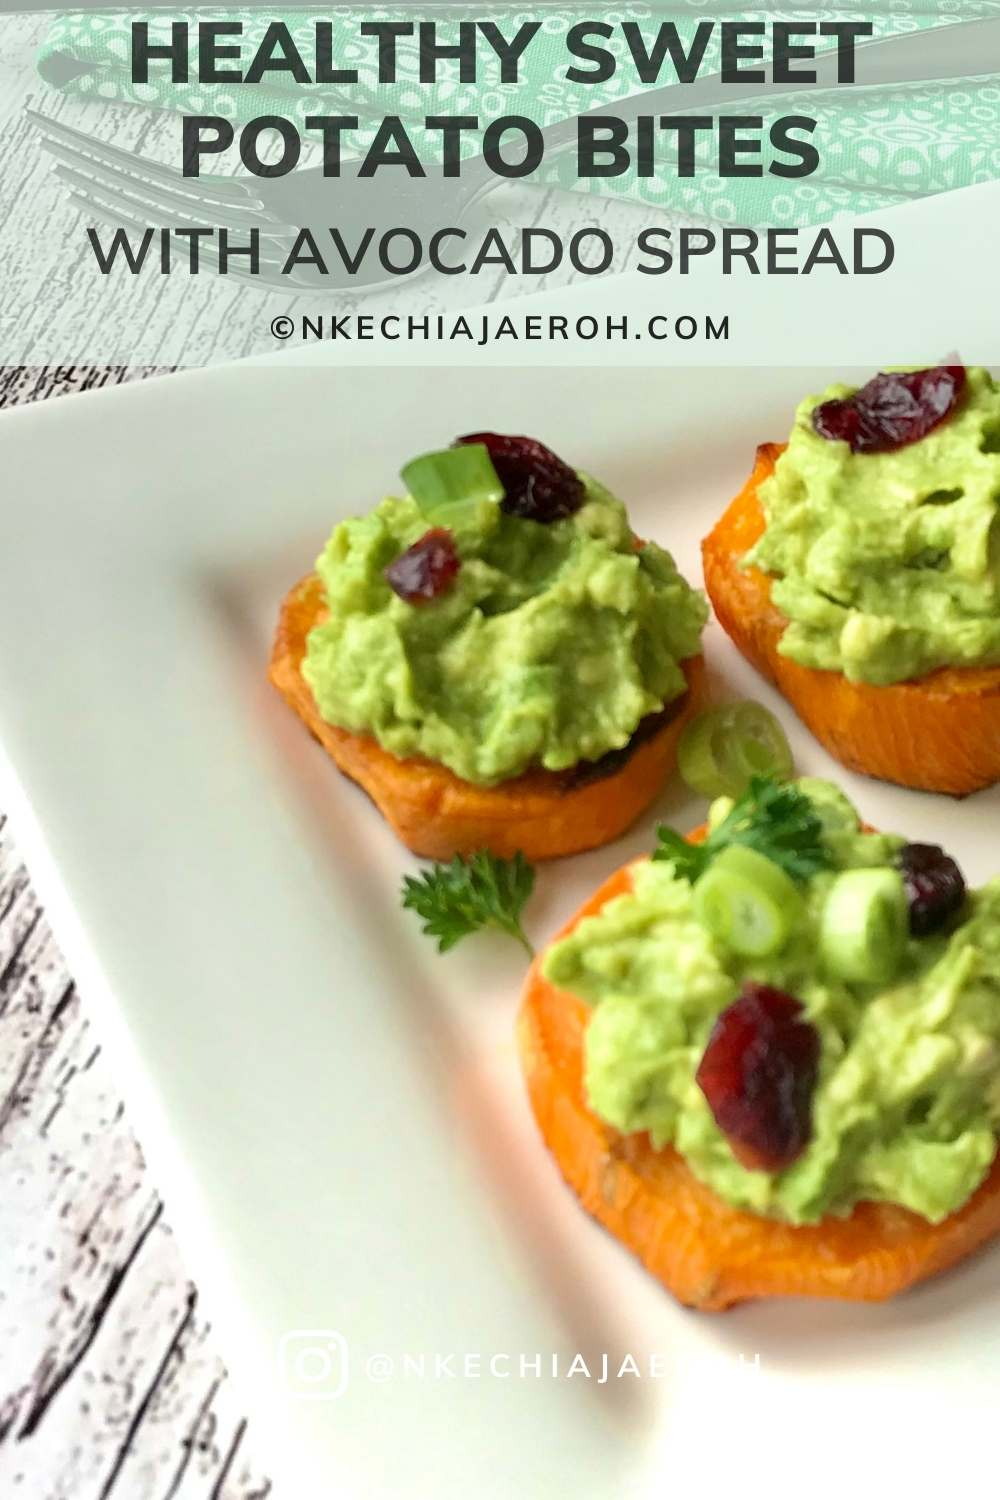 Healthy baked sweet potato avocado bites - vegan, gluten-free, low carb, and easy to make! These sweet potato cups are the easiest foods to cook, and they are loaded with guacamole. Perfect combo for the best appetizer, side dish, snacks, these vegan roasted sweet potato rounds, smashed avocado are just the best finger foods. and a healthy and delicious appetizer, snacks, side dish, or meal! #sweetpotato #Bakebites #sidedish #appetizer #healthyappetizer #sweetpotatoside #guacamole